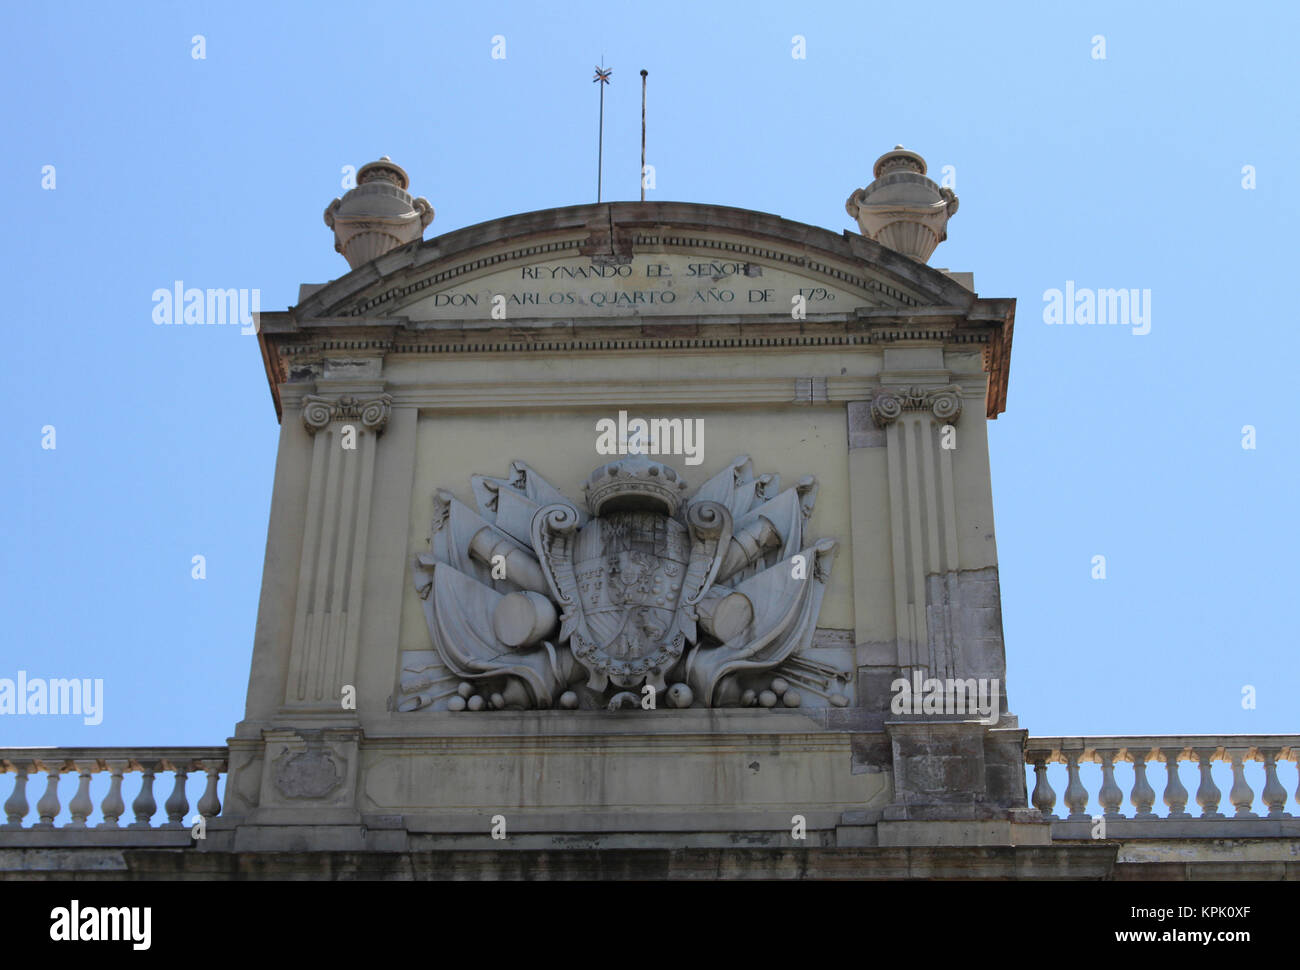 The Delegation of the Spanish Government (delegacion del Gobierno) building roof facade with Coat of Arms, Marques - Stock Image